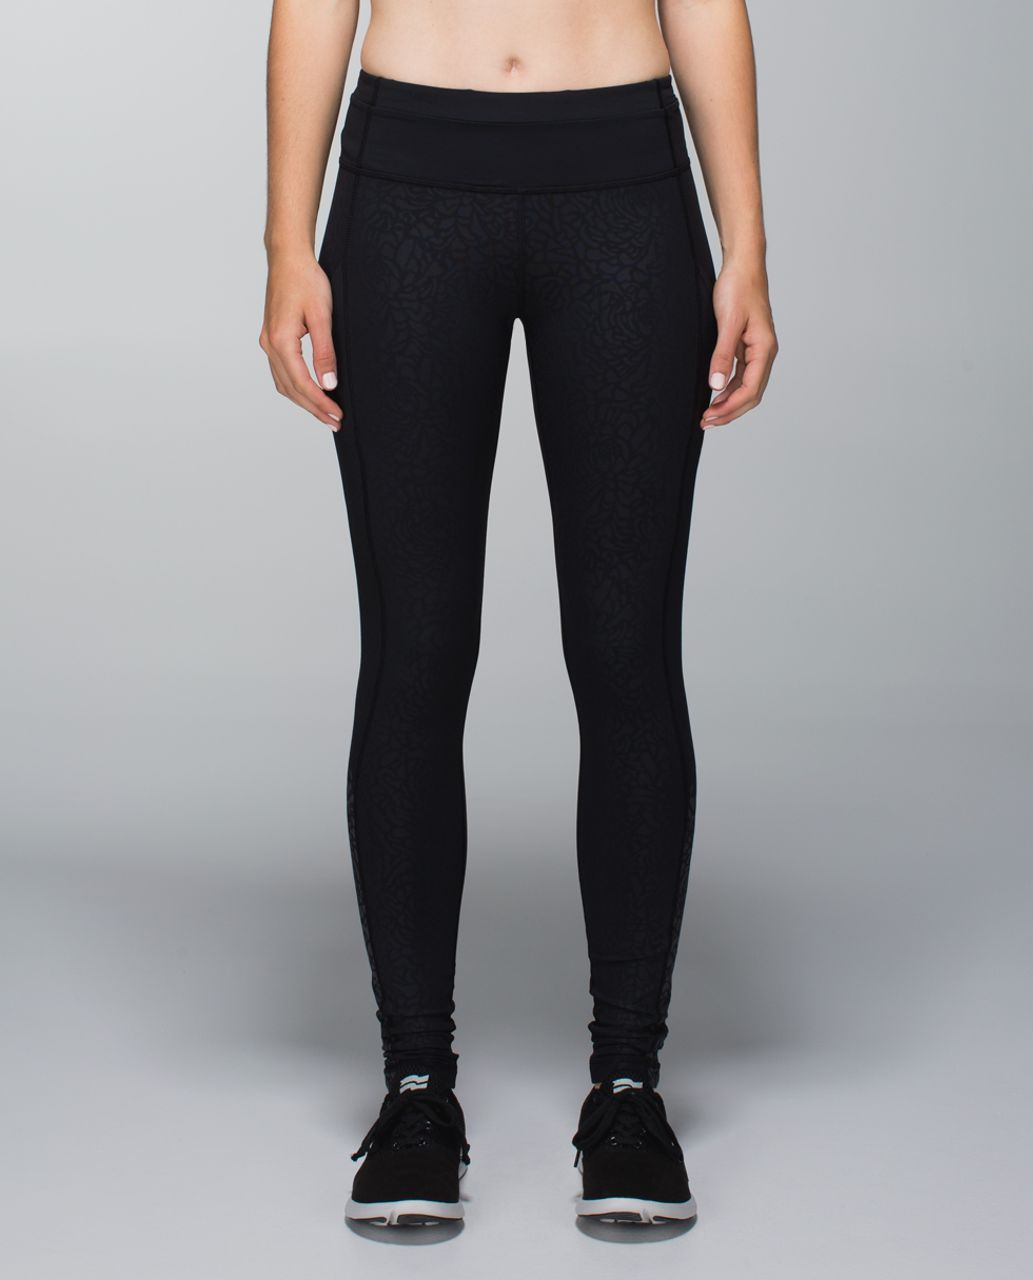 Lululemon Speed Tight II *Graphic - Petal Camo Embossed Black / Black